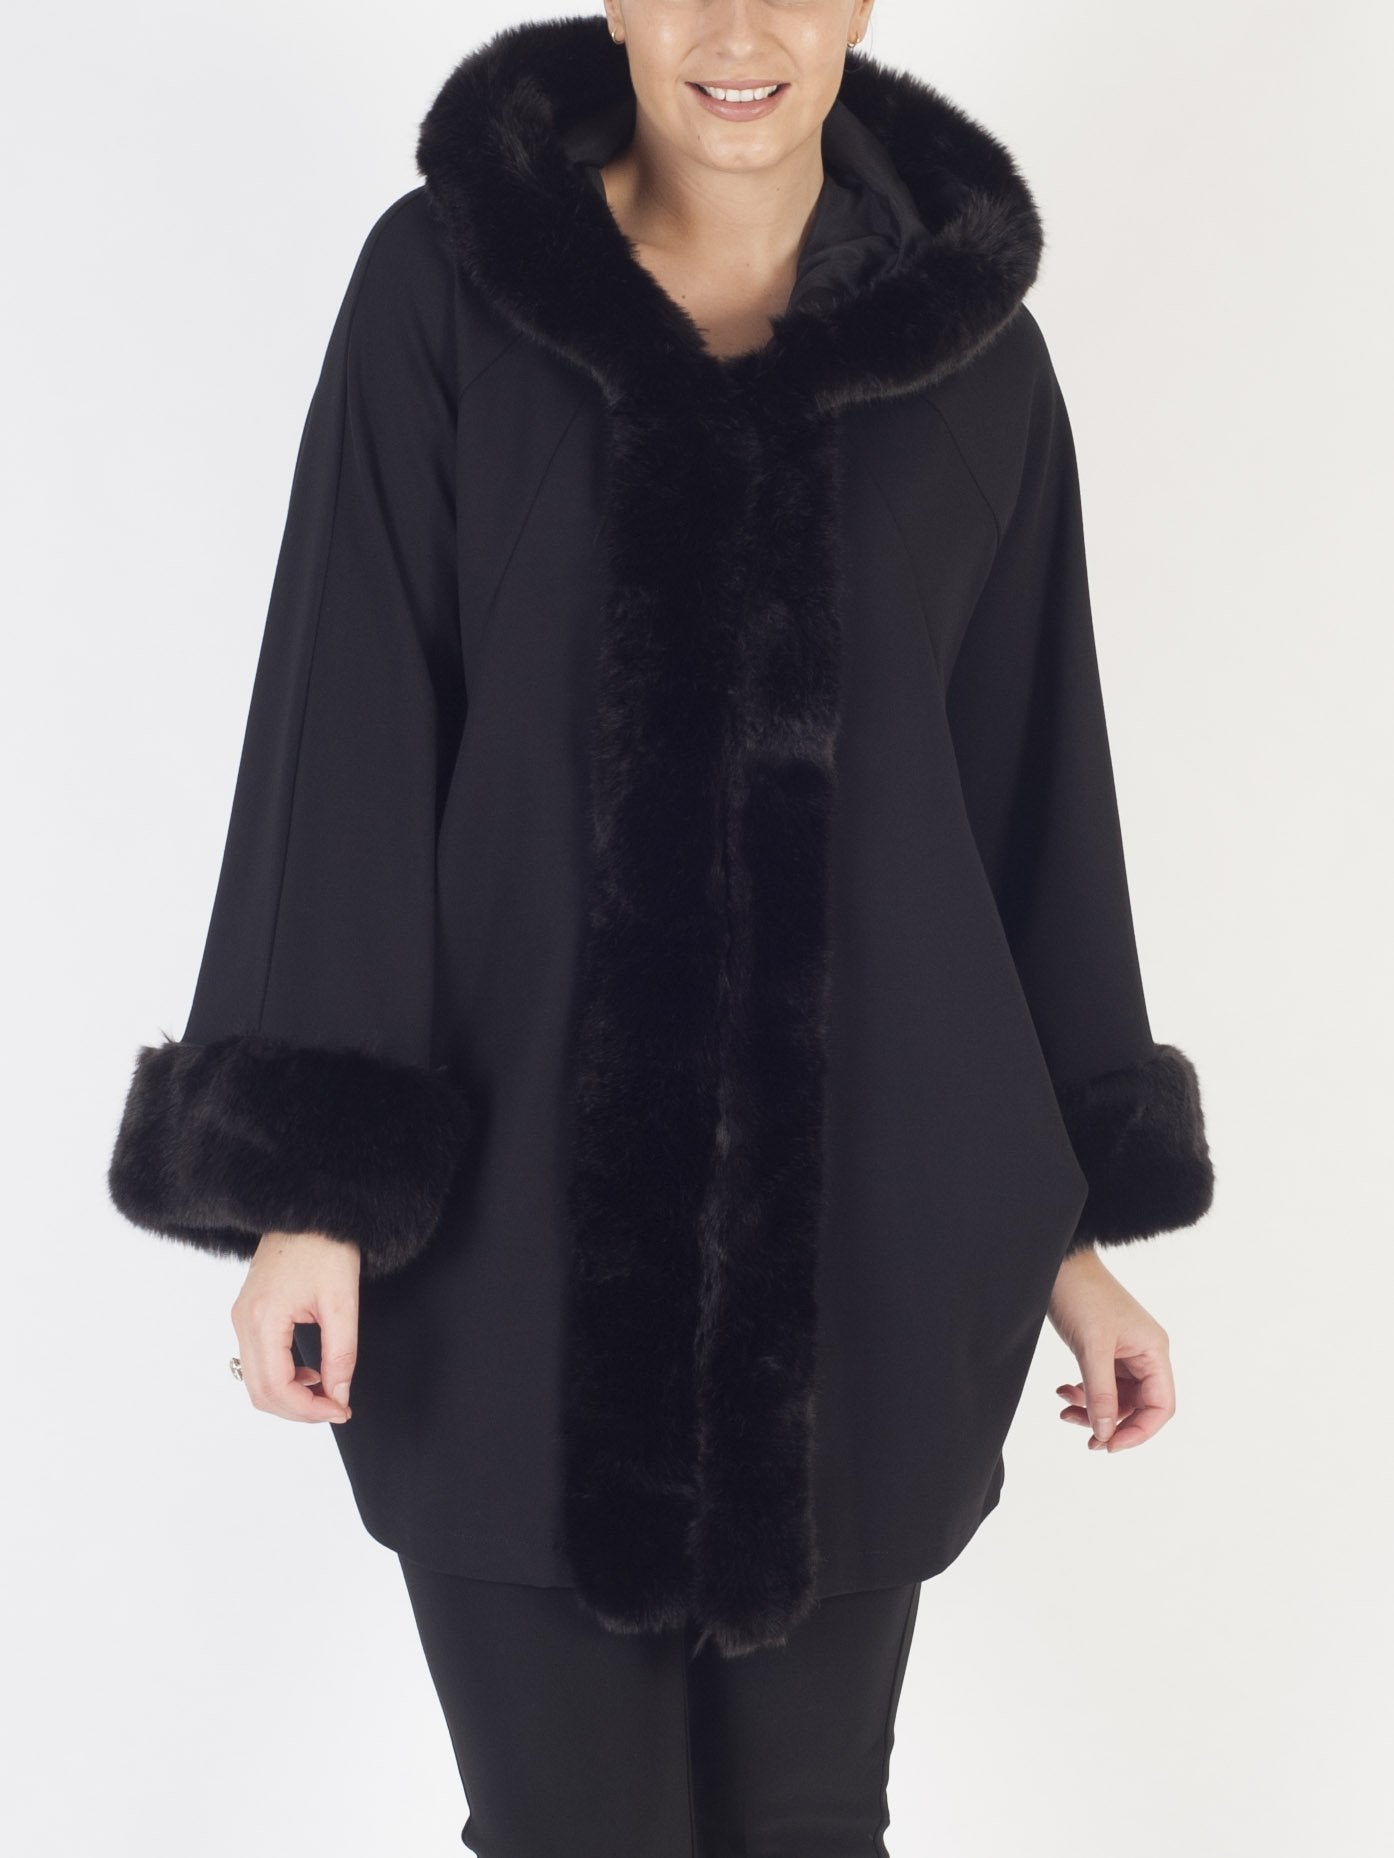 Joseph Ribkoff Black Faux Fur Trimmed Coat